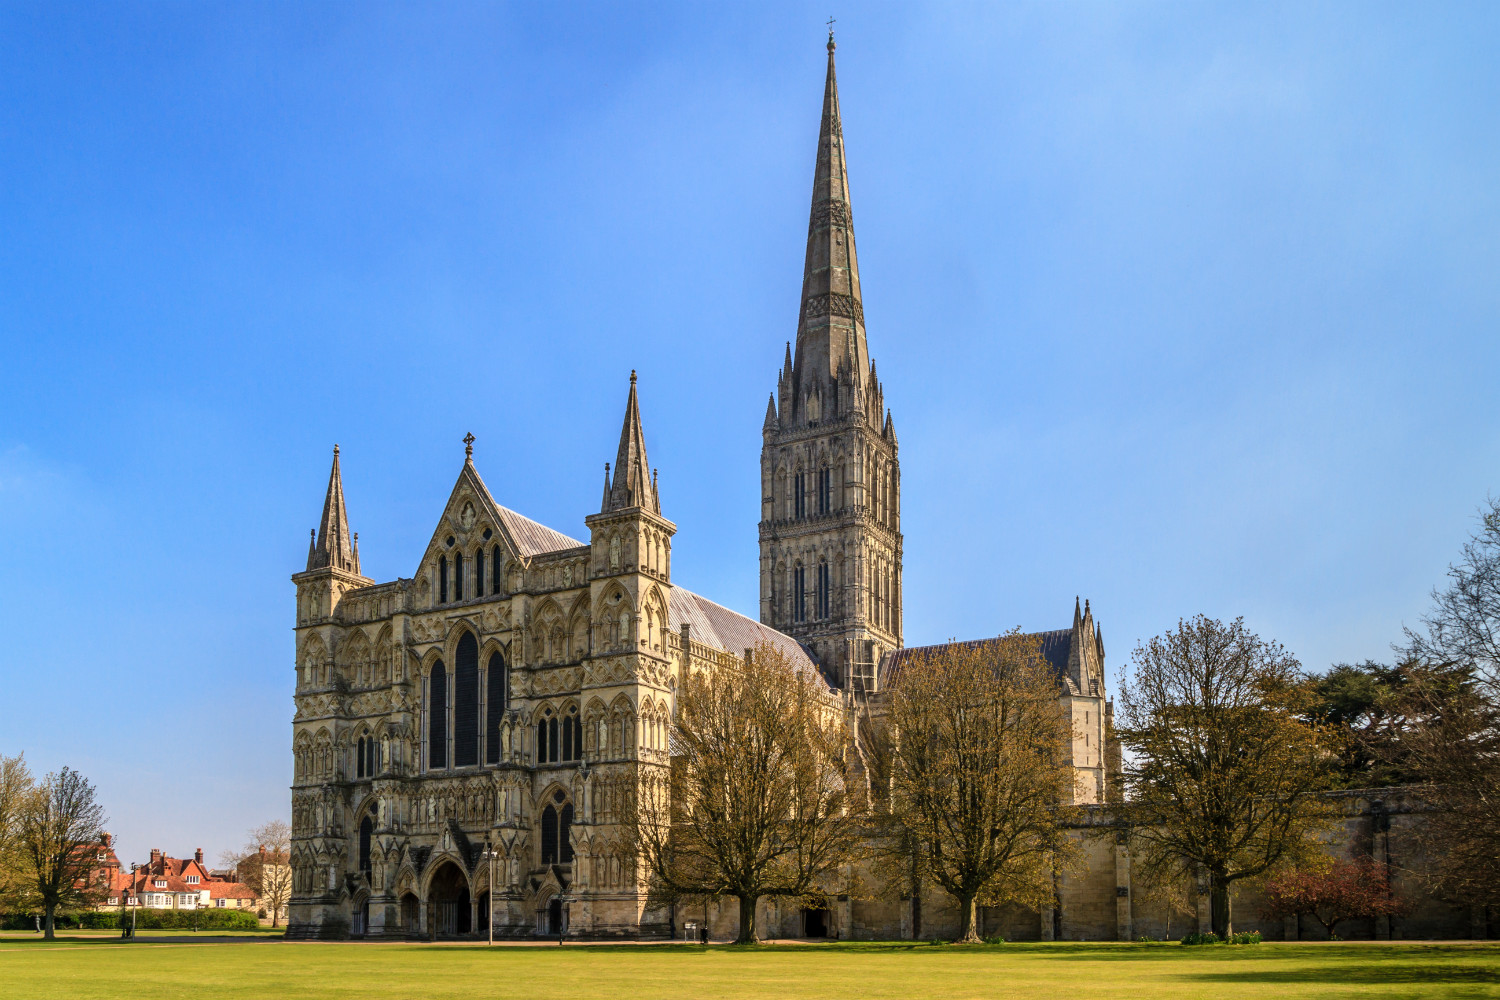 salisbury cathedral Shop for salisbury cathedral on etsy, the place to express your creativity through the buying and selling of handmade and vintage goods.